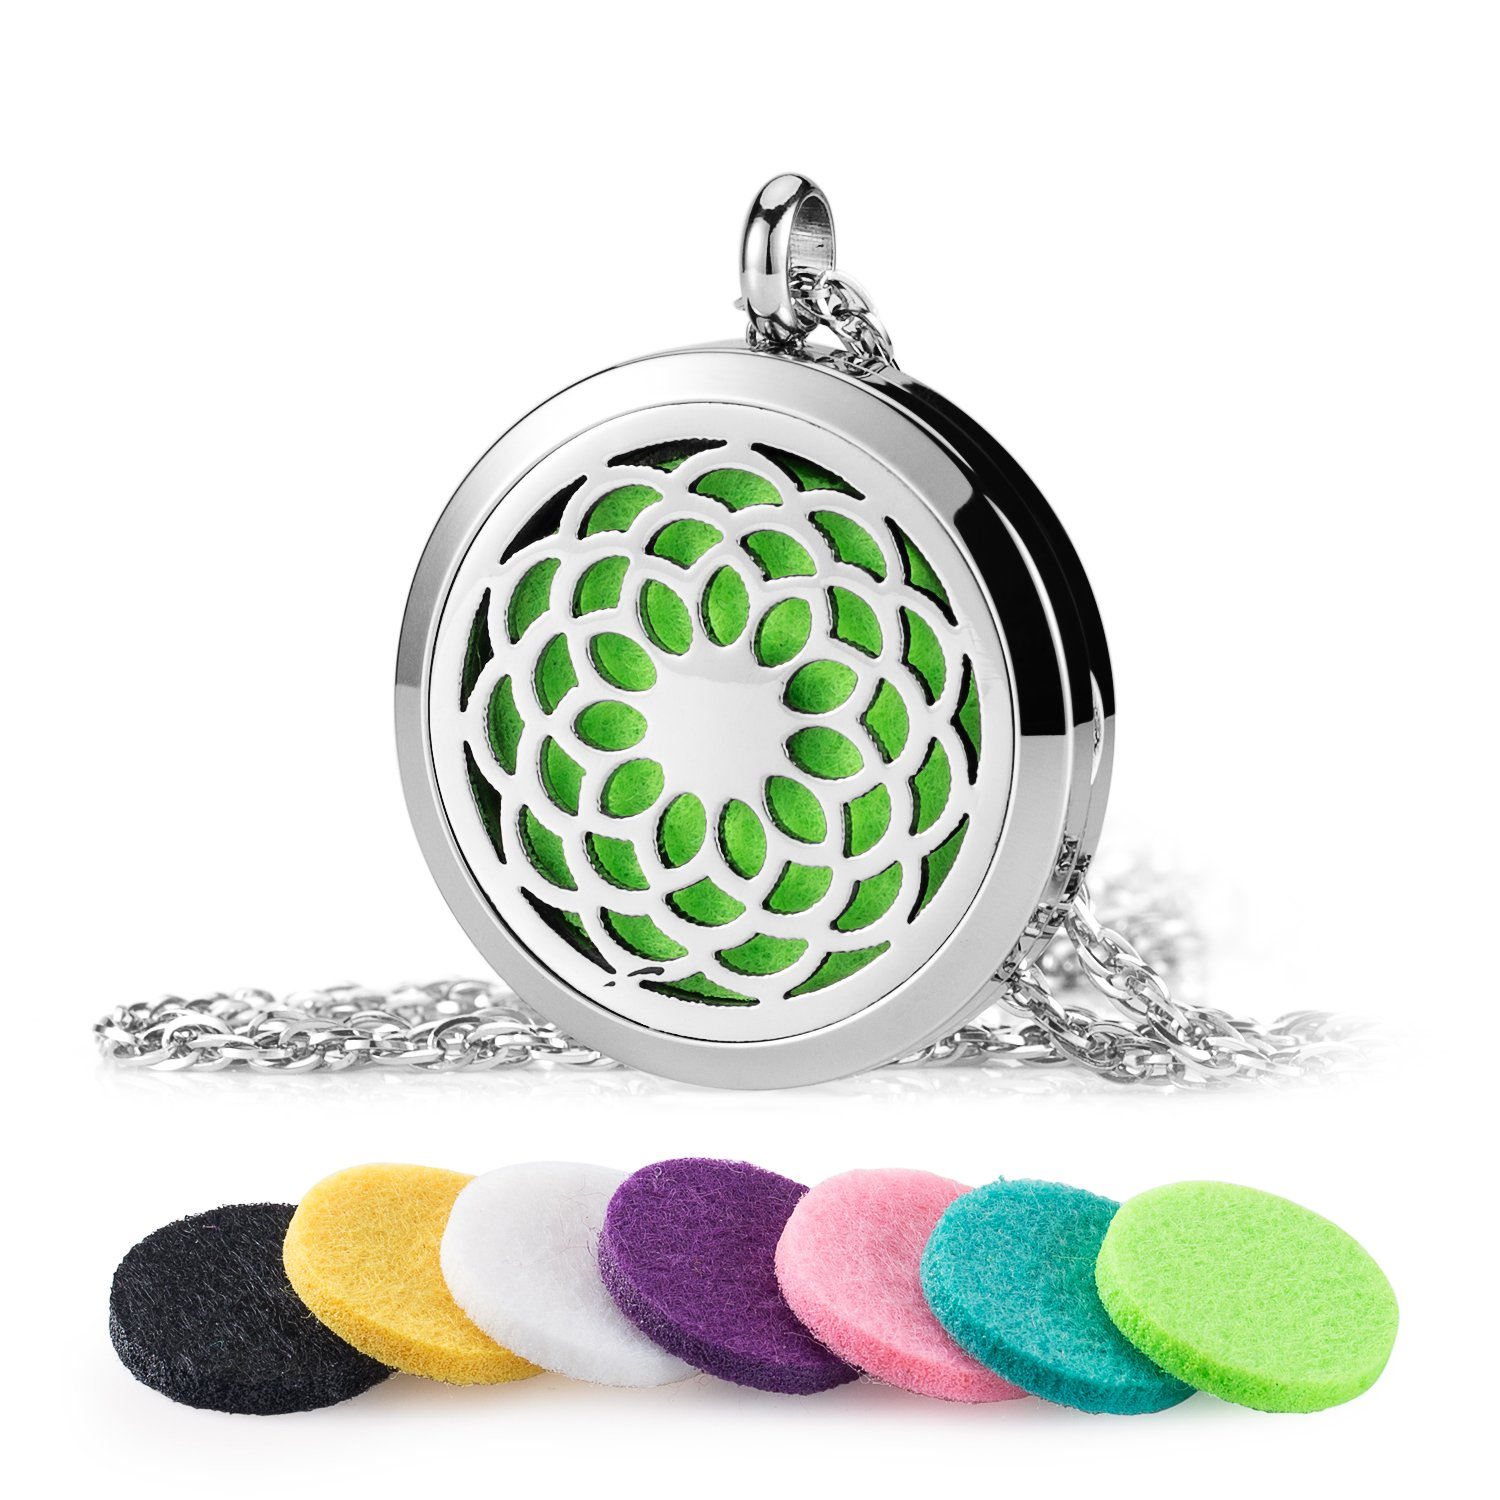 Aromatherapy Essential Oil Diffuser Necklace AromaHouse 316L Stainless Steel Locket Pendant Jewelry,24 Adjustable Chain+7 Refill Pads Aroma House Tree-S